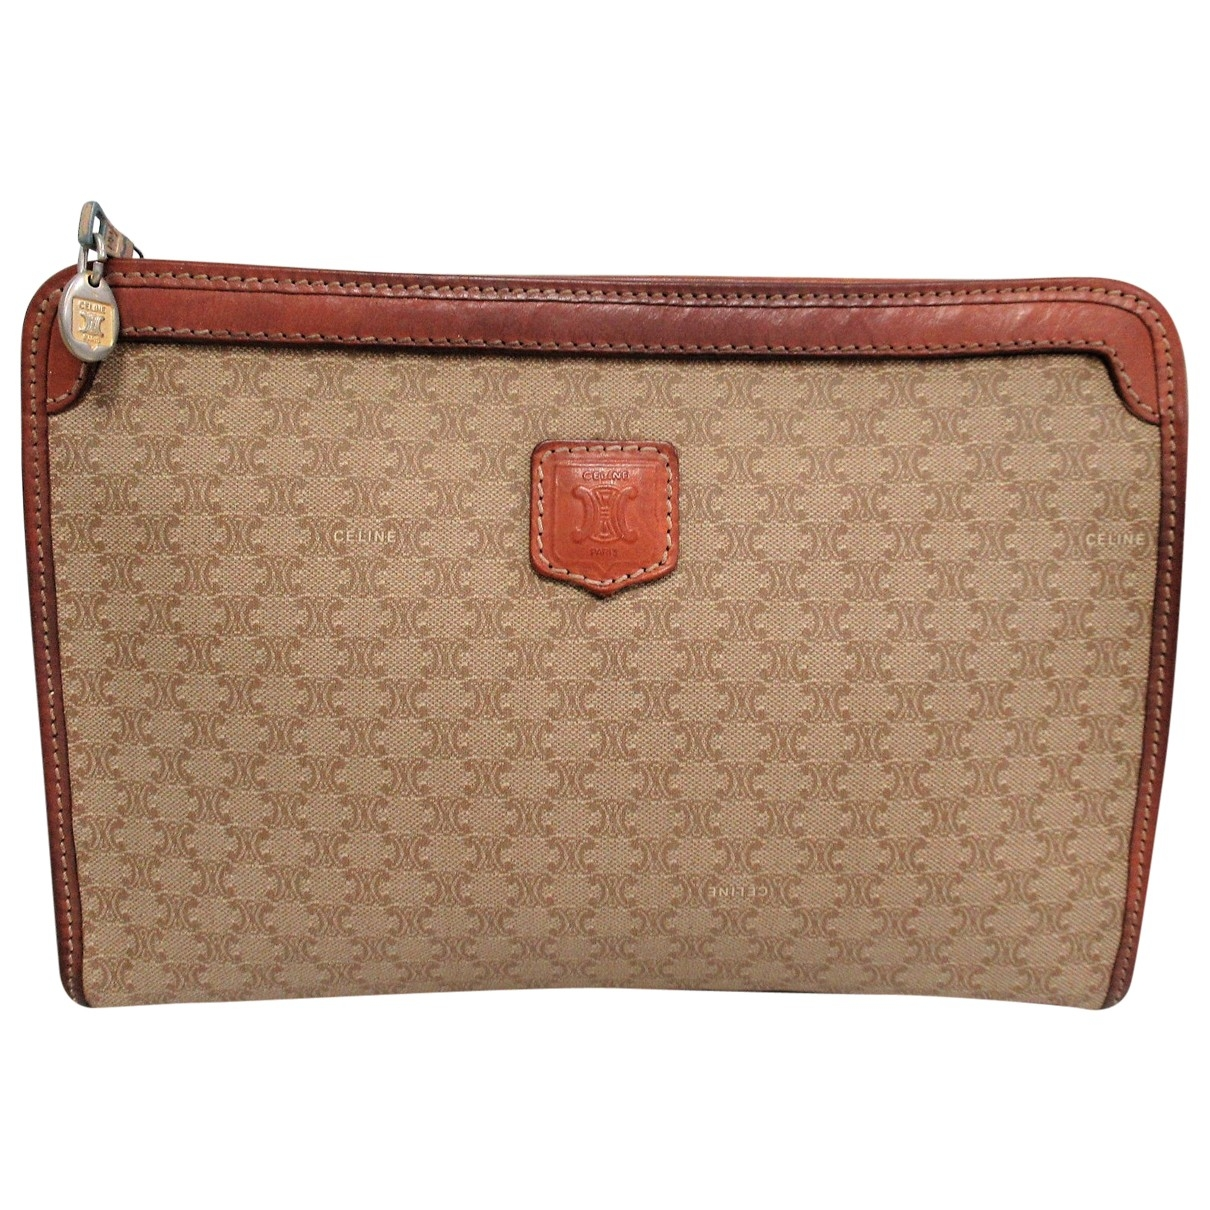 Celine \N Clutch in  Braun Leder